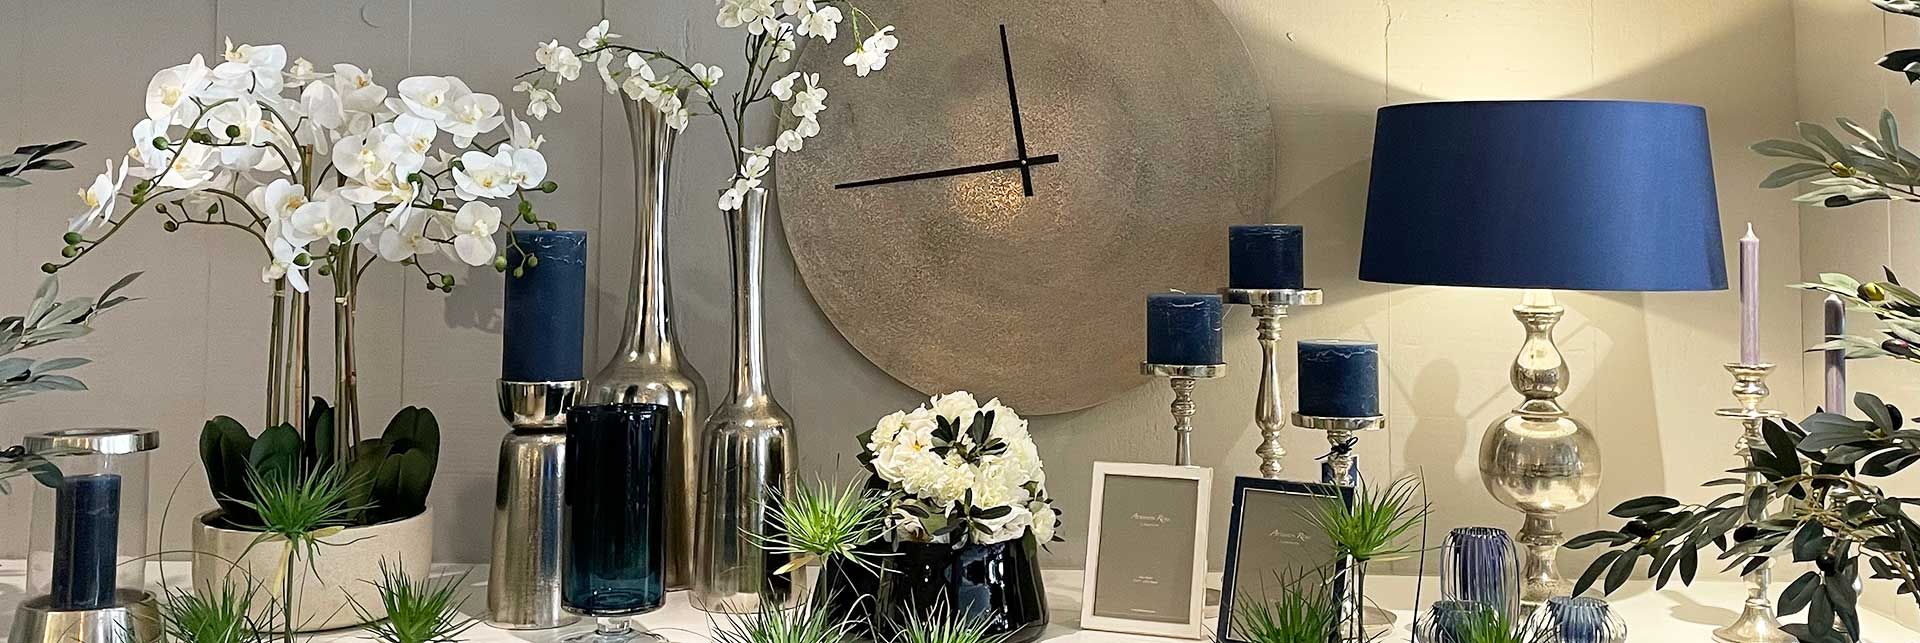 A selection of home interior finish touches on display at New England Home Interiors